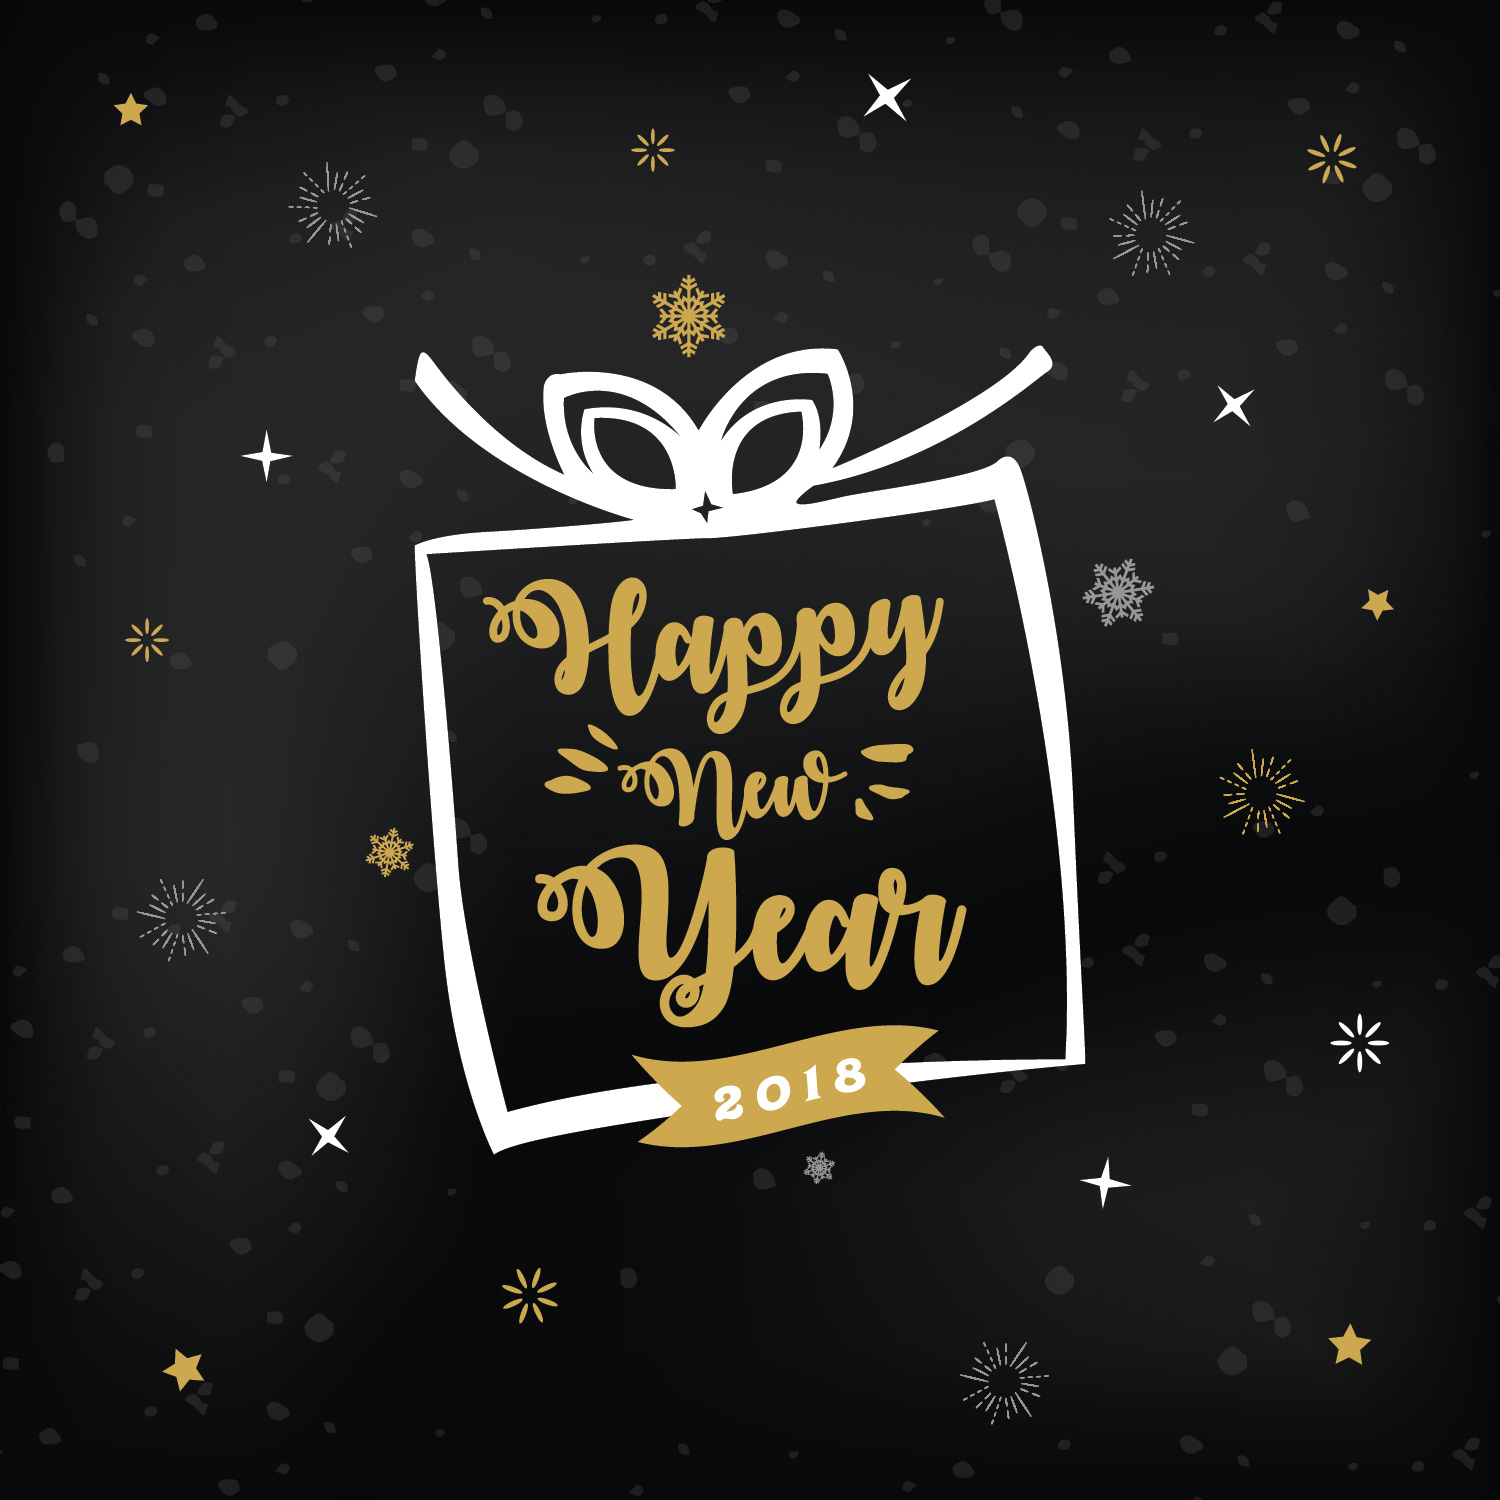 4 Free New Year Greeting Card Templates   Dribbble Graphics     Free New Year Greeting Card Templates 01